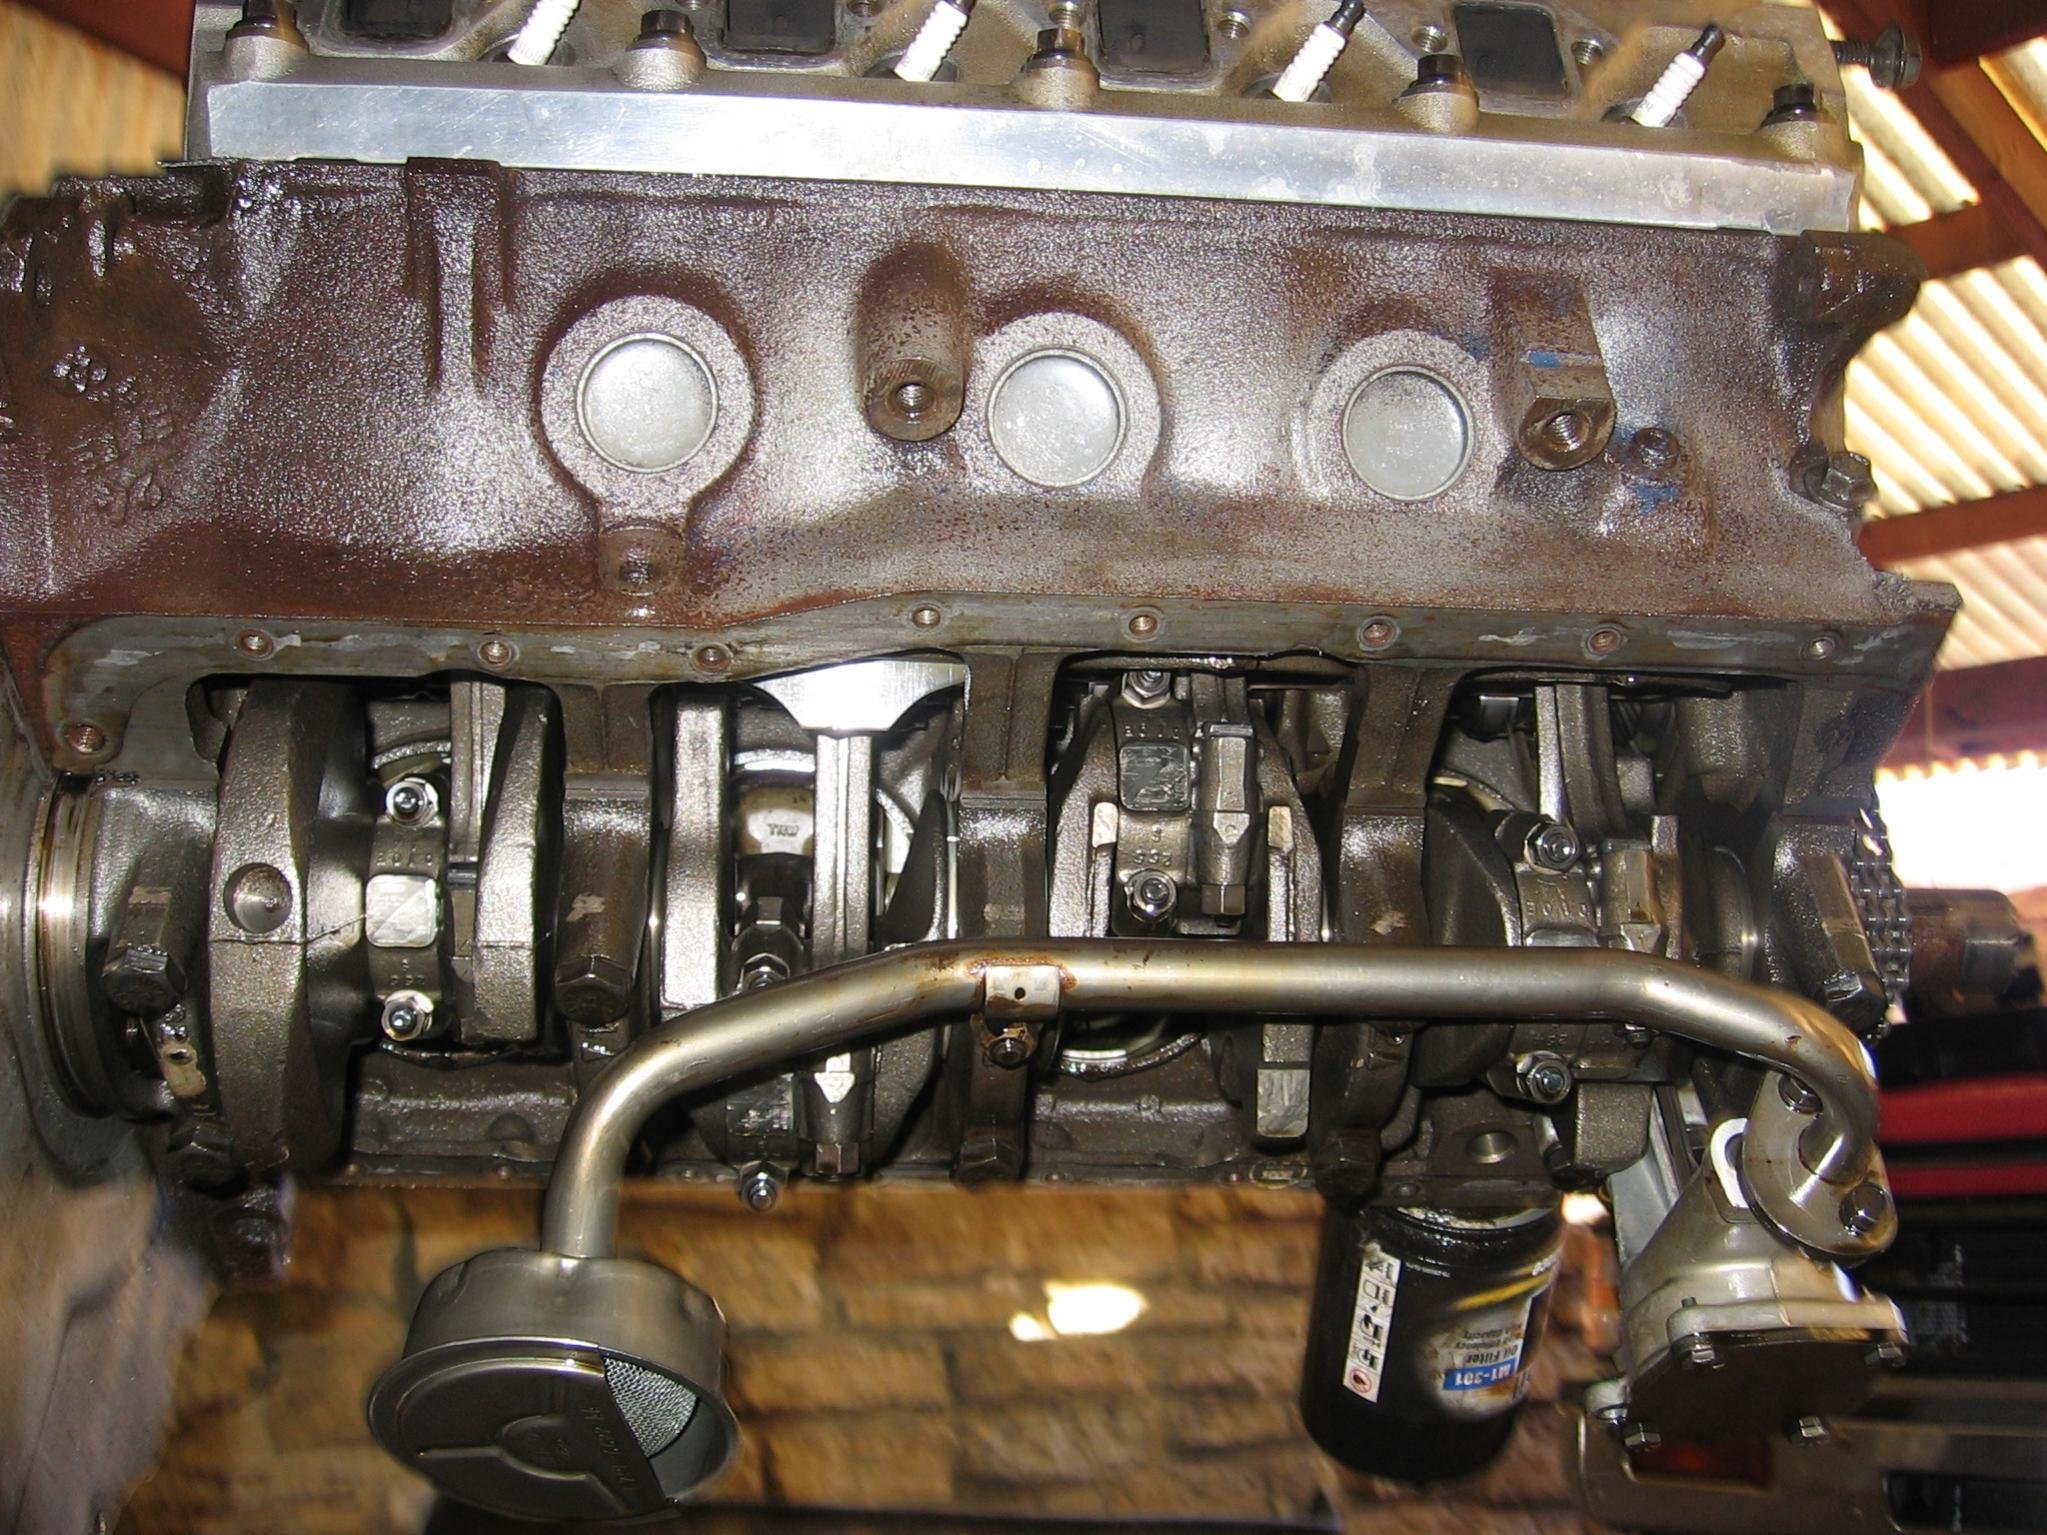 Ford Ranger Vacuum Diagram likewise Ford One Wire Alternator Wiring Diagram additionally 1973 Ford Mustang Mach 1 Engine likewise Alina Li moreover Ford 351 Windsor Engine. on 351 windsor engine diagram